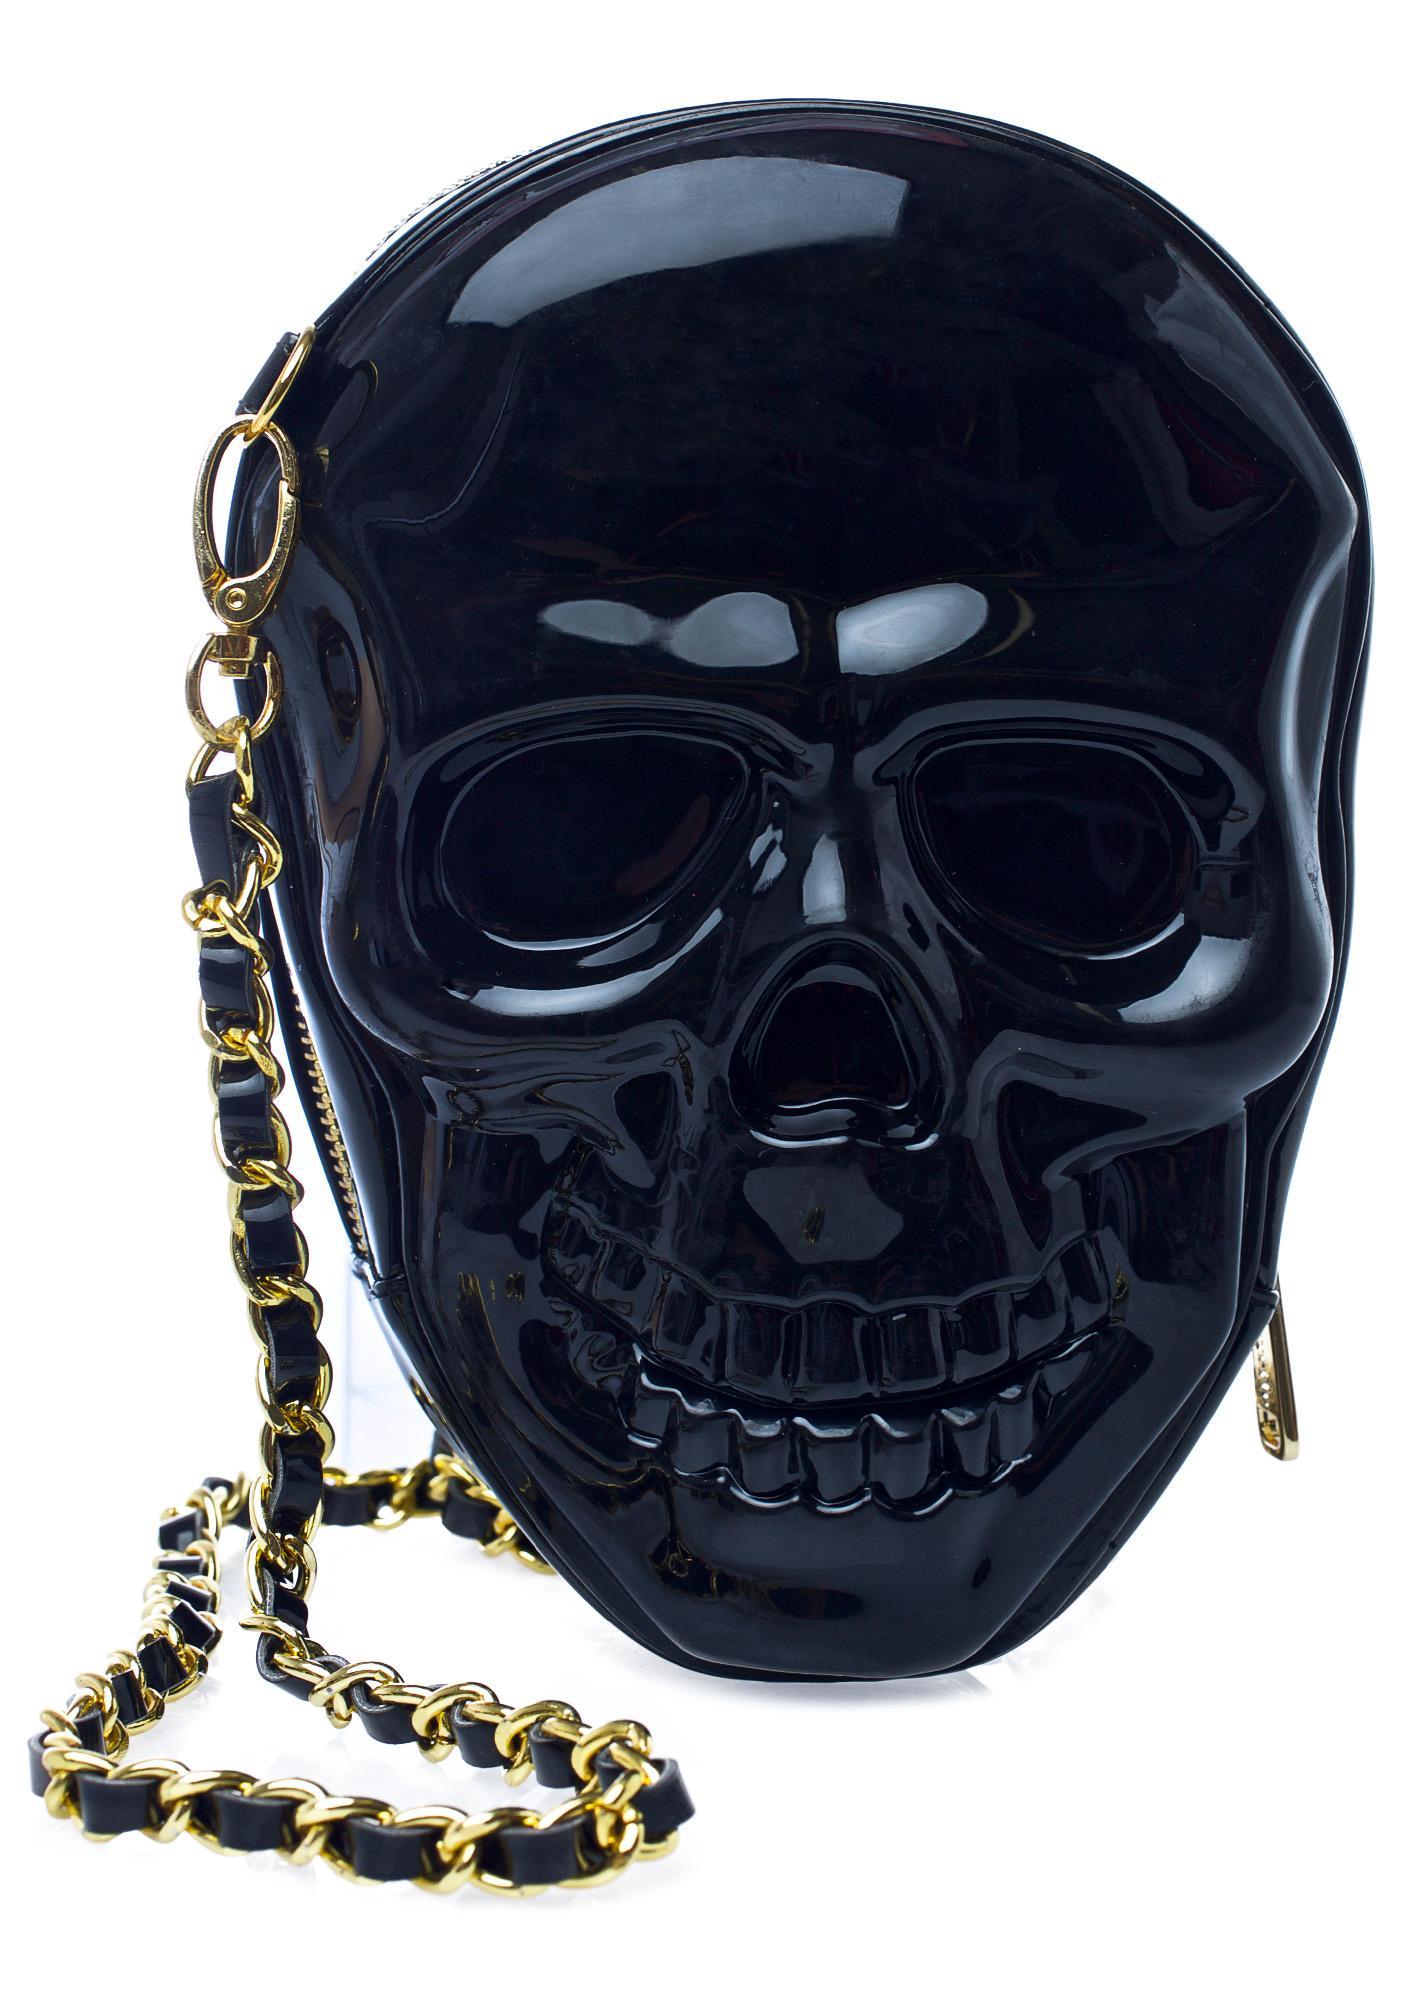 Loungefly Skull Crossbody Bag